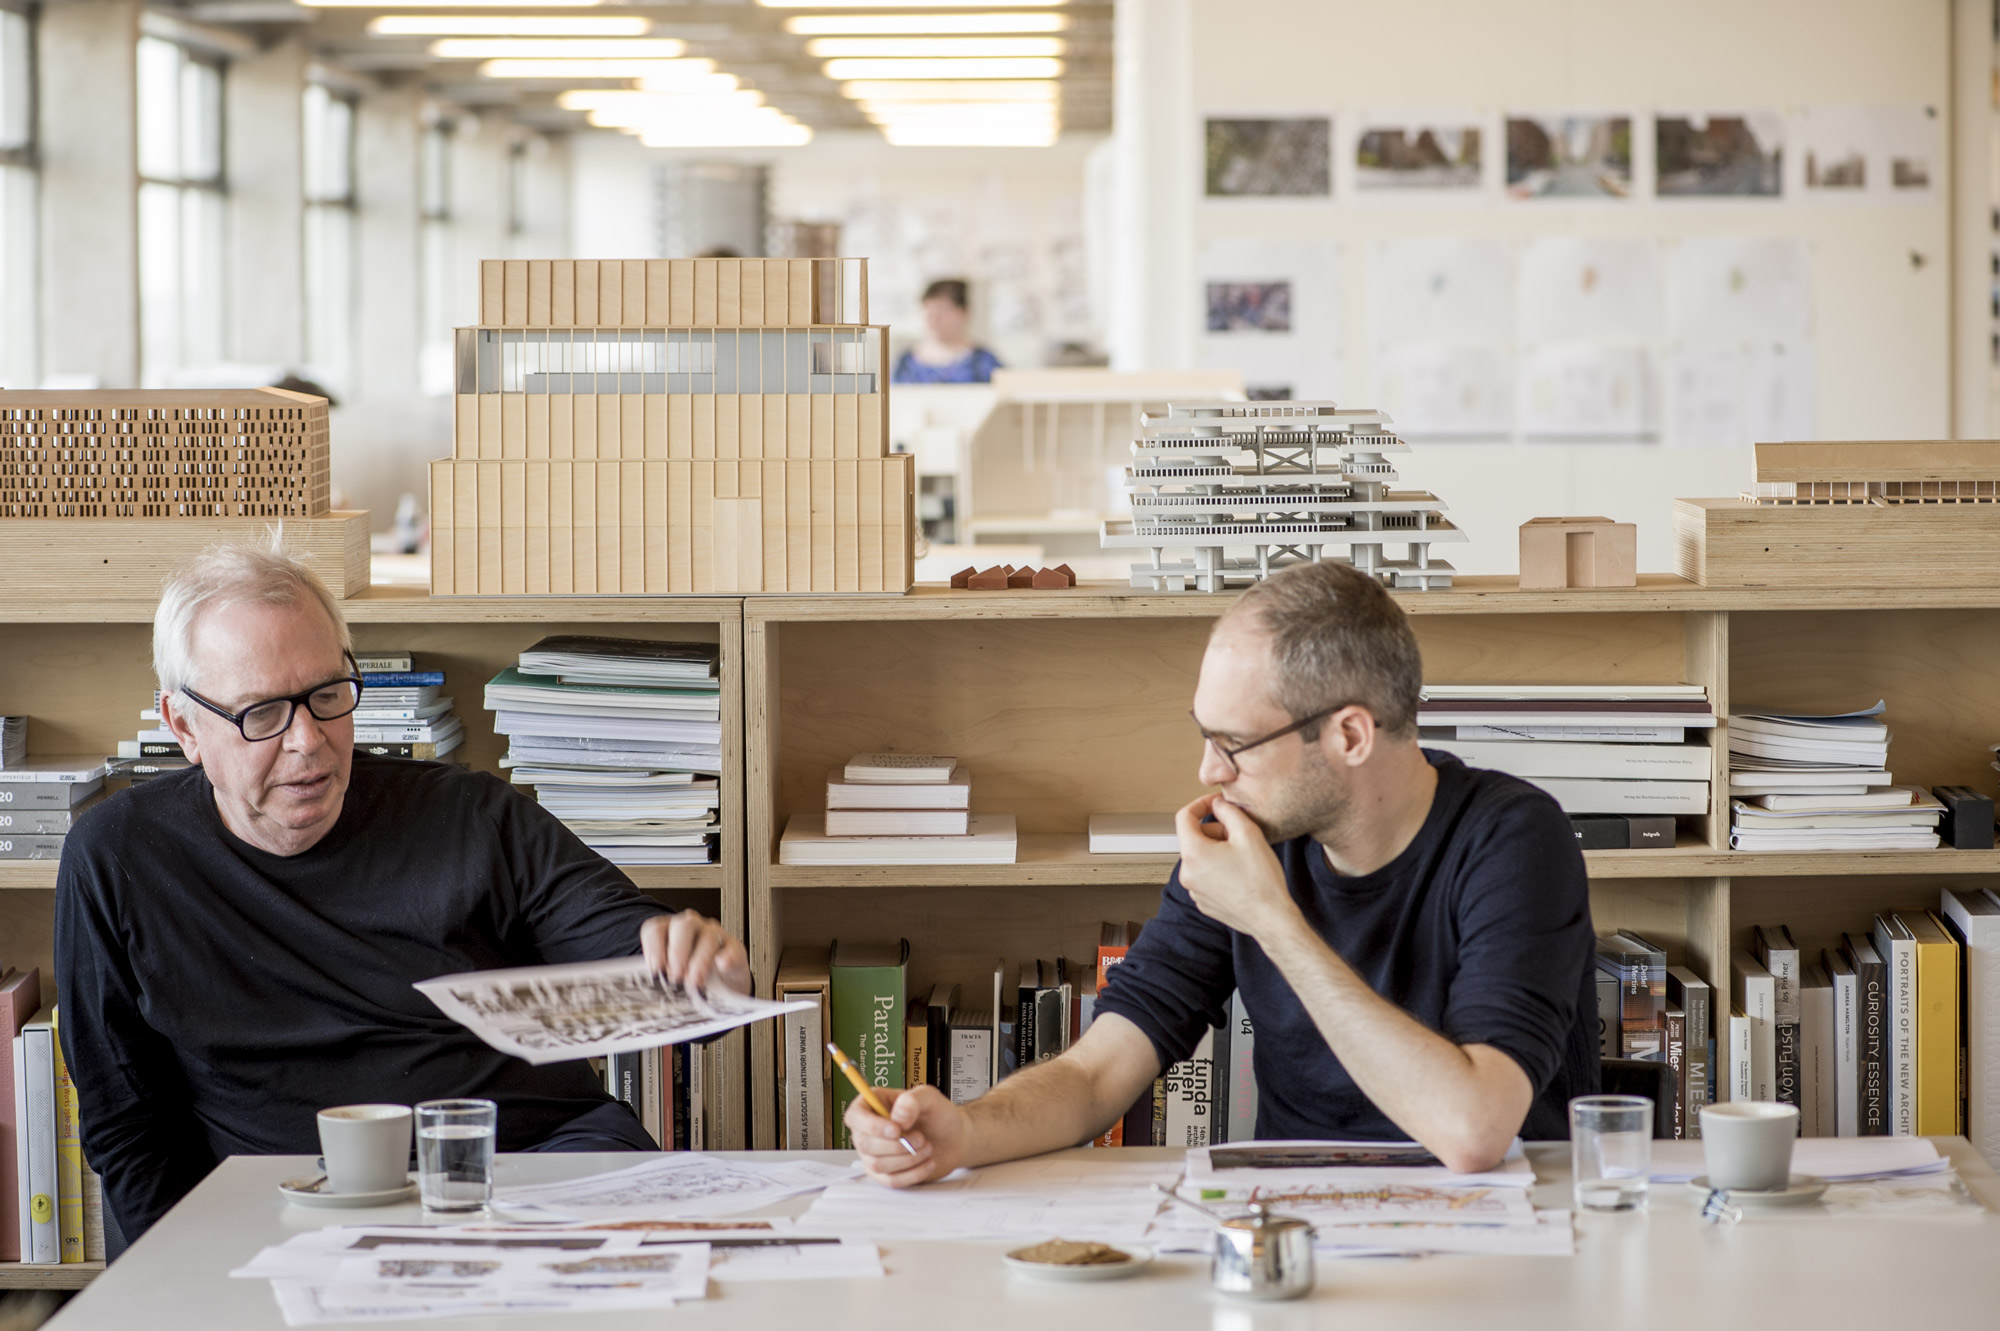 Rolex Mentor &Protégé Sir David Chipperfield, Rolex Mentor 2016‑2017 in Architecture in 2016-2017 with his Protégé